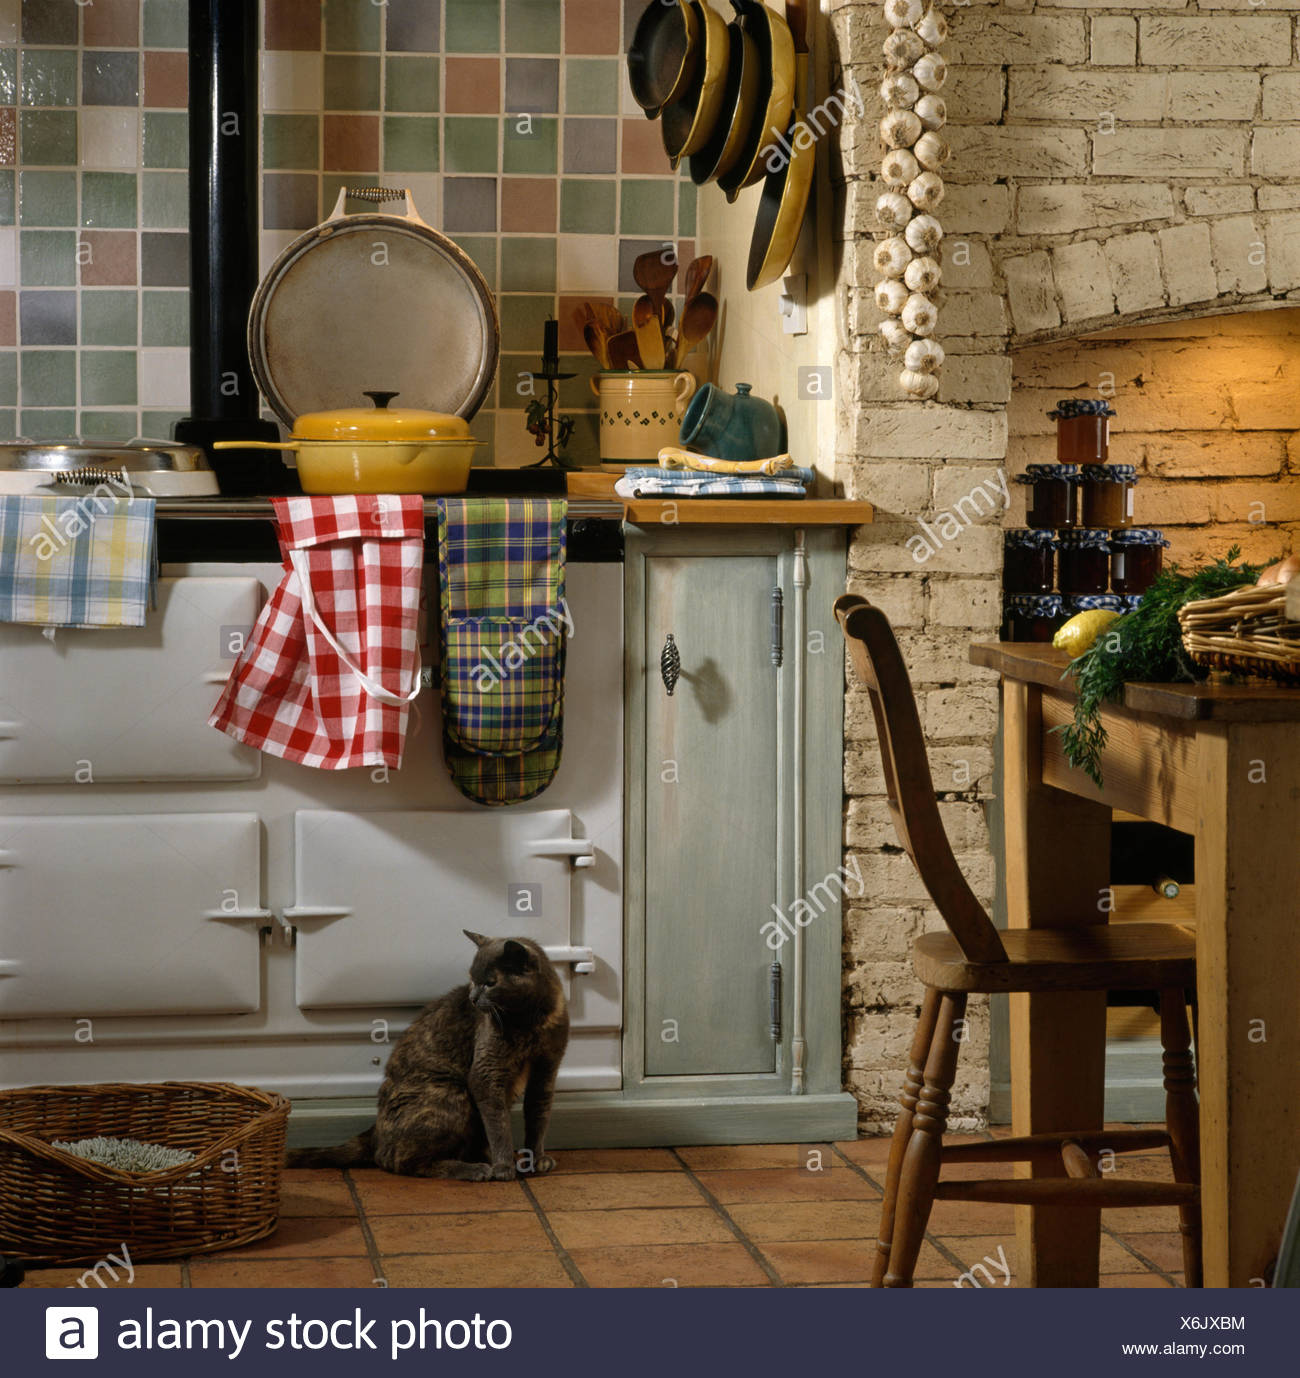 Cat sitting beside white Aga oven with a red checked apron in a country kitchen - Stock Image